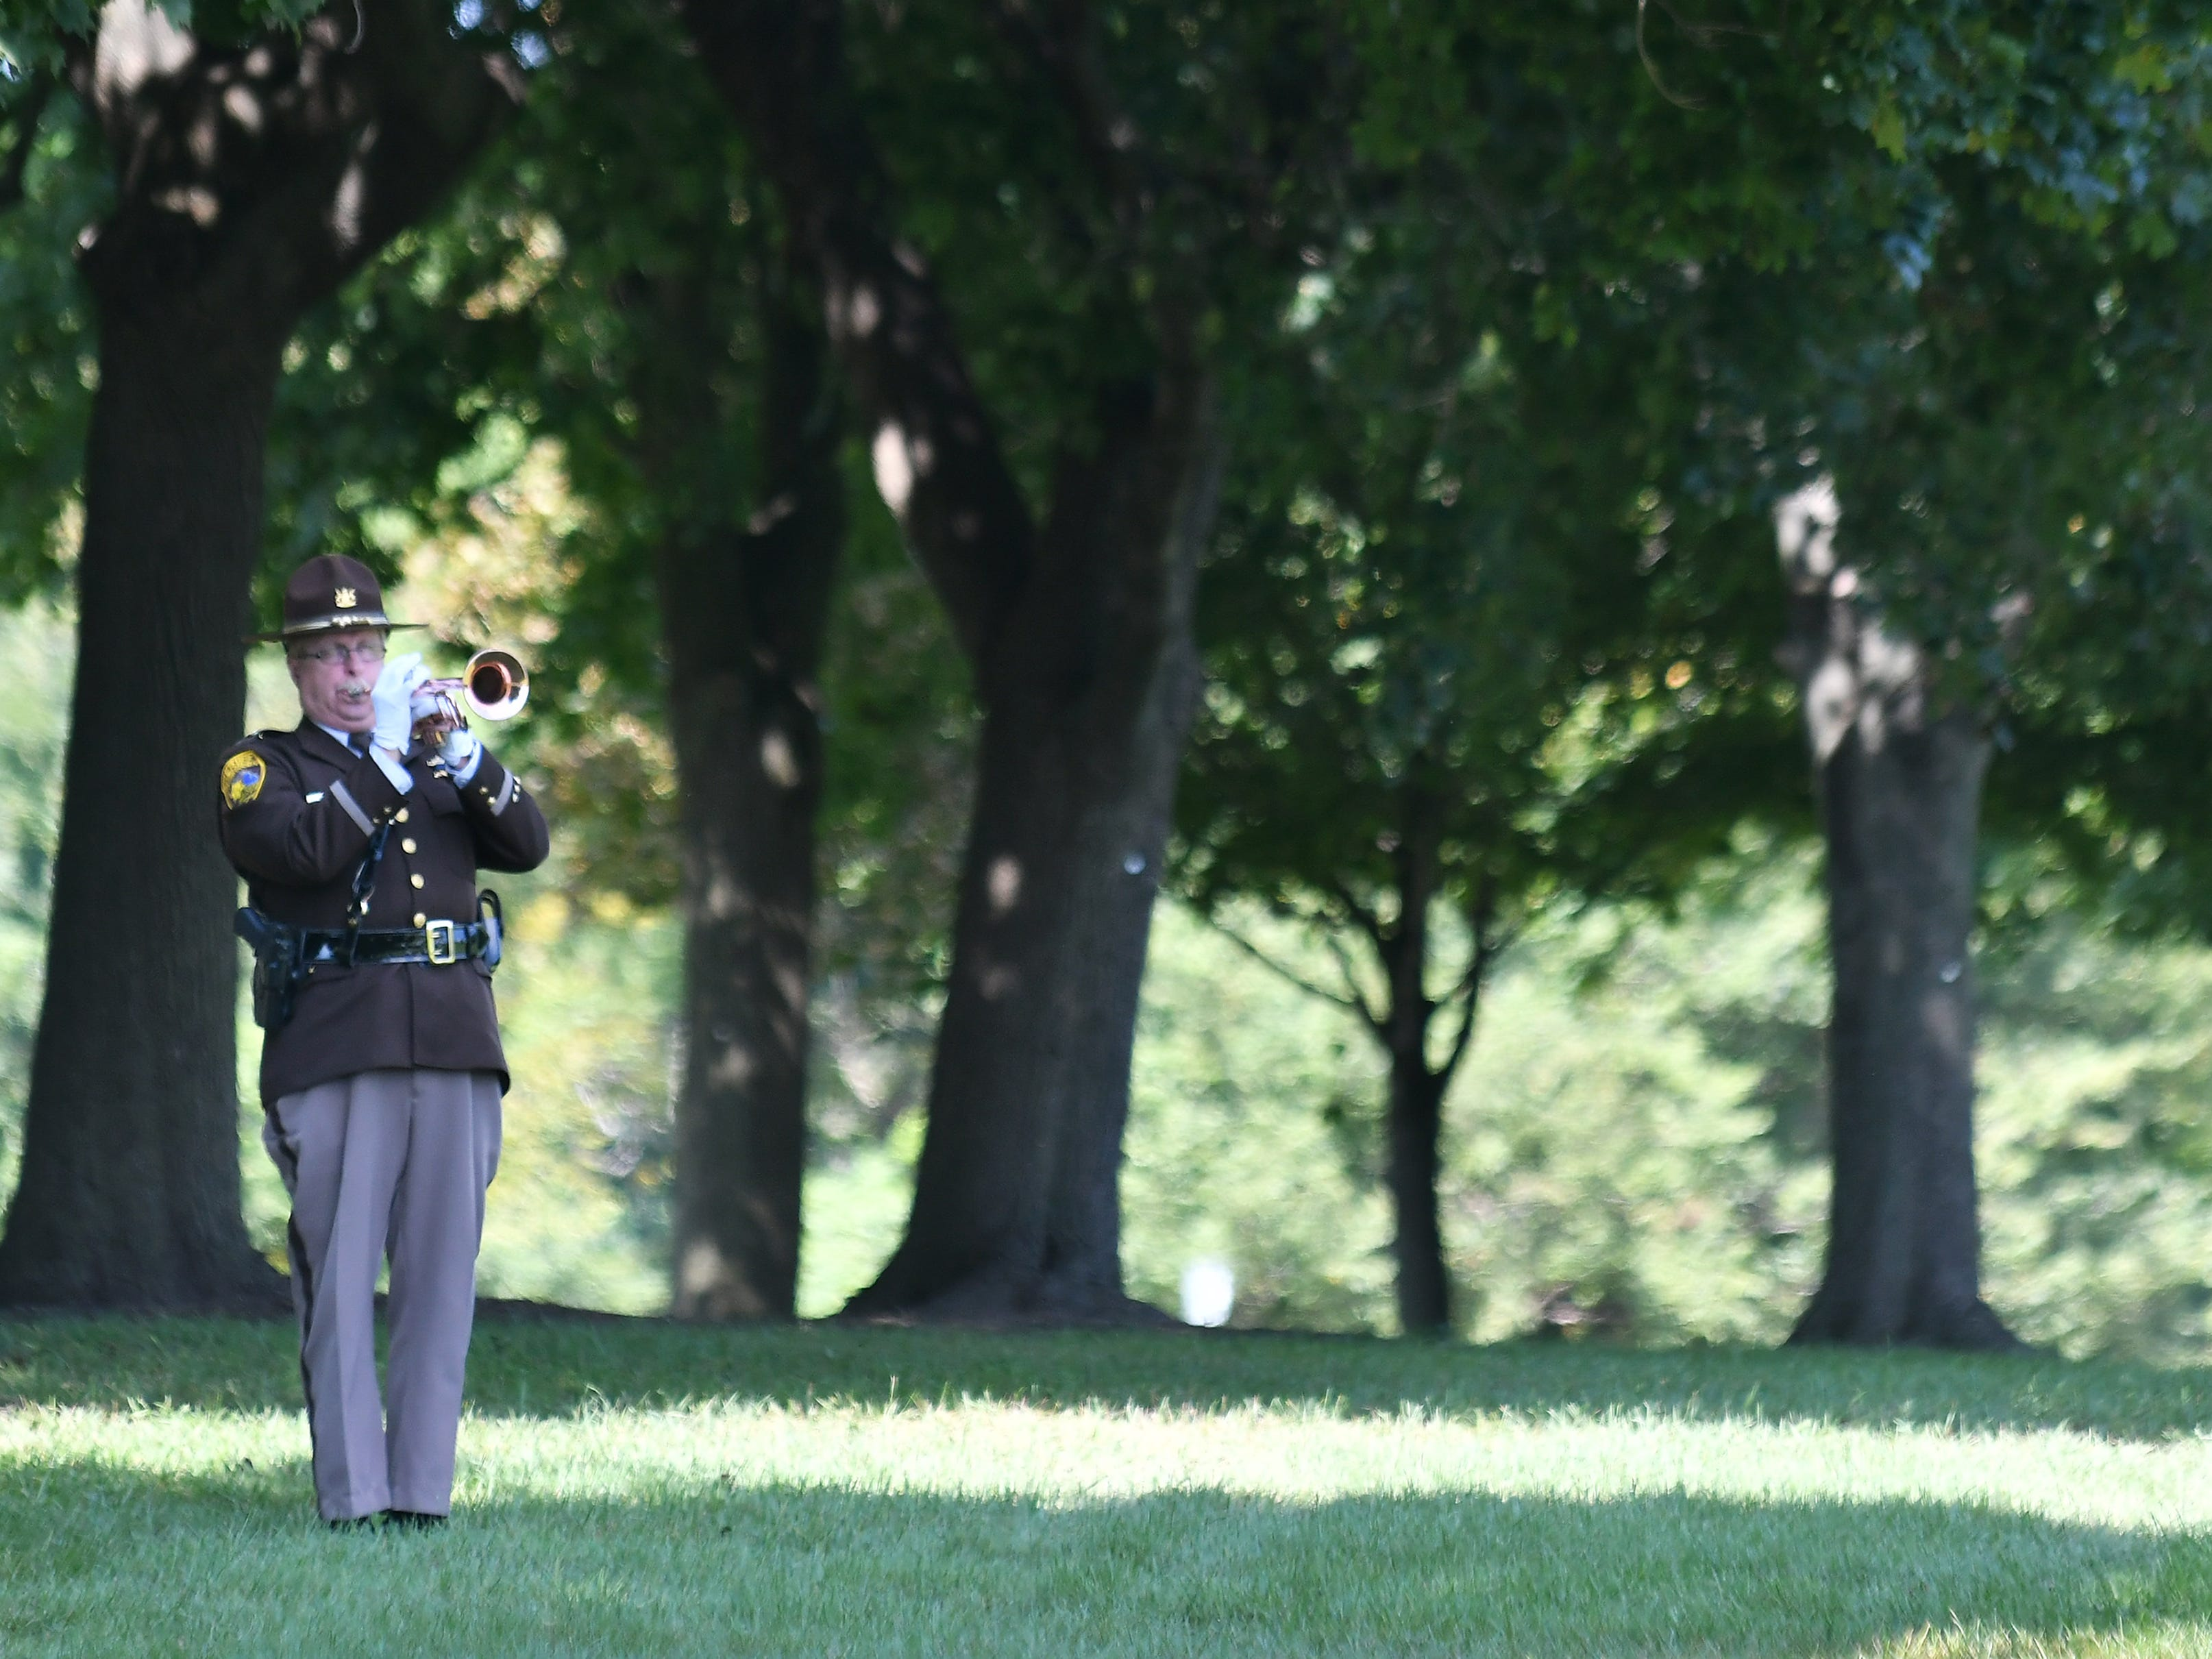 Oakland County Sheriff Deputy James Gregory plays taps during the ceremony.